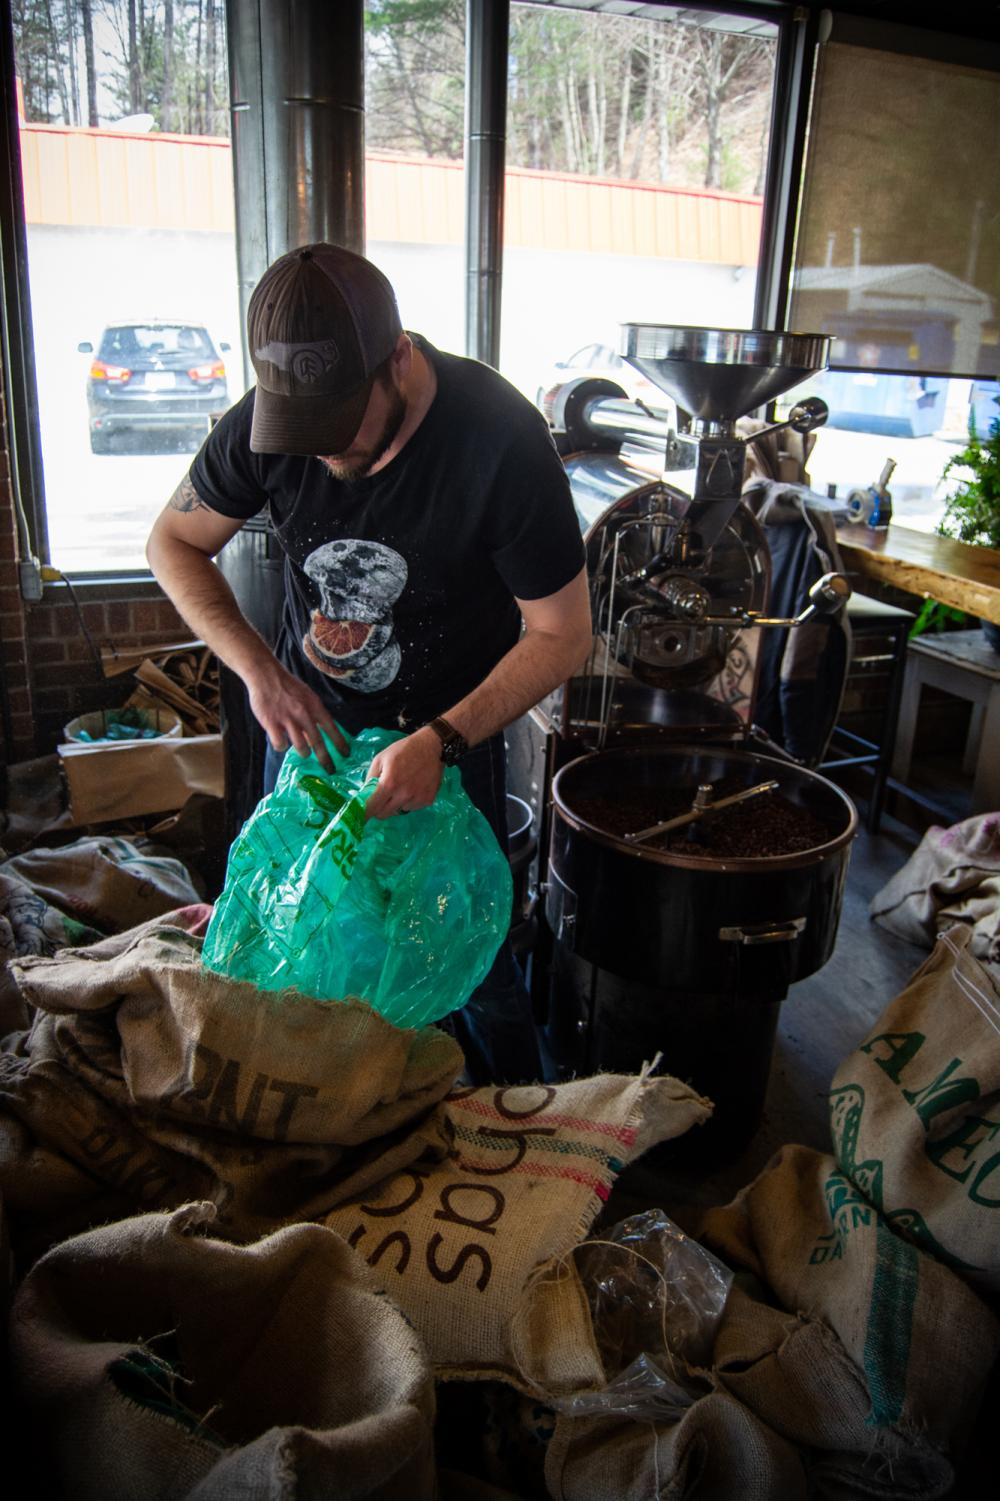 David Tatum siphons through coffee bean sacks behind Local Lion's roasting station. Tatum is the primary roaster at Local Lion Espresso Bar.